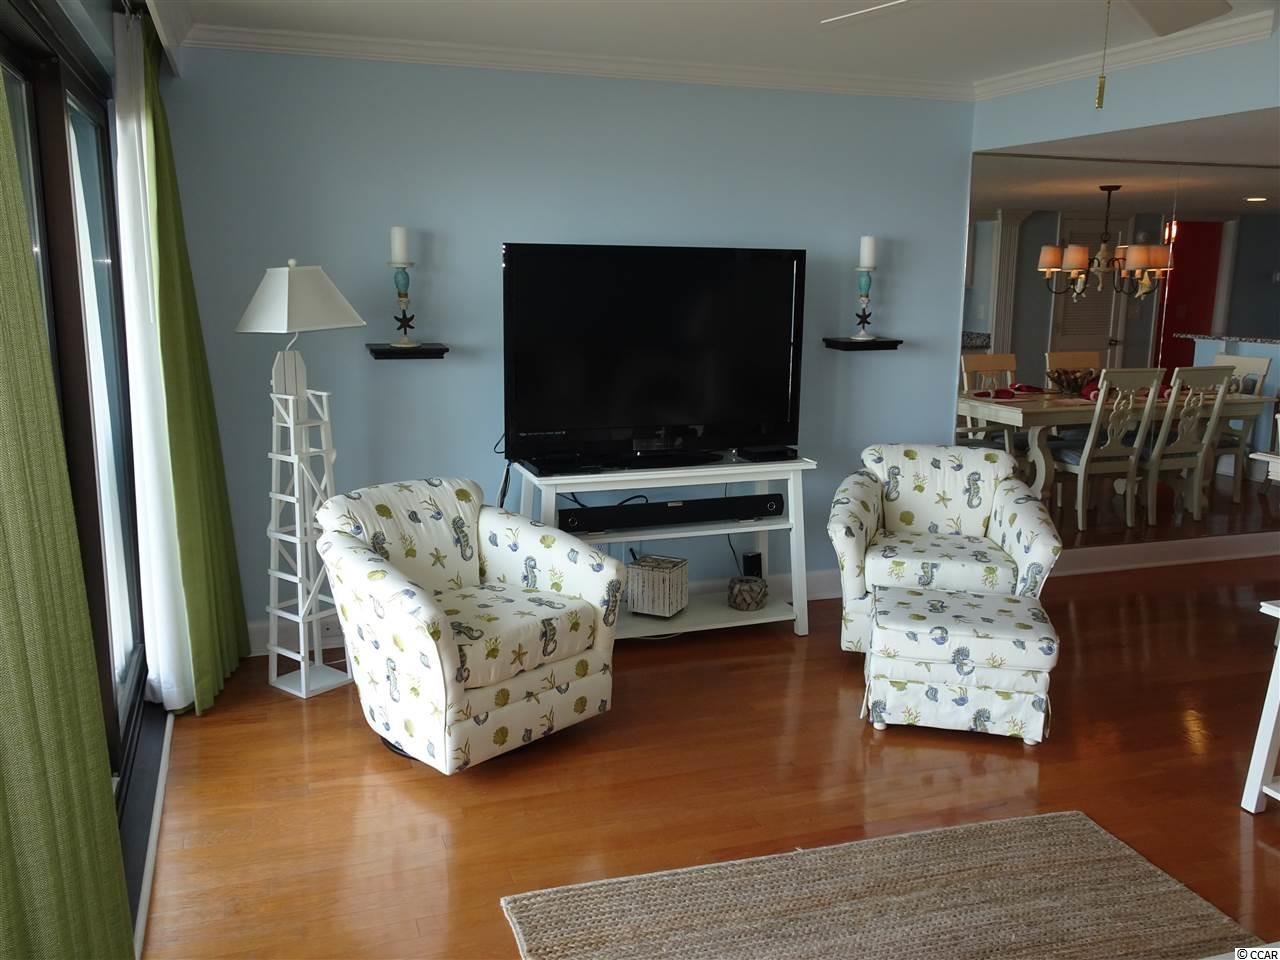 Additional photo for property listing at A1L Sandpiper A A1L Sandpiper A Pawleys Island, South Carolina 29585 United States